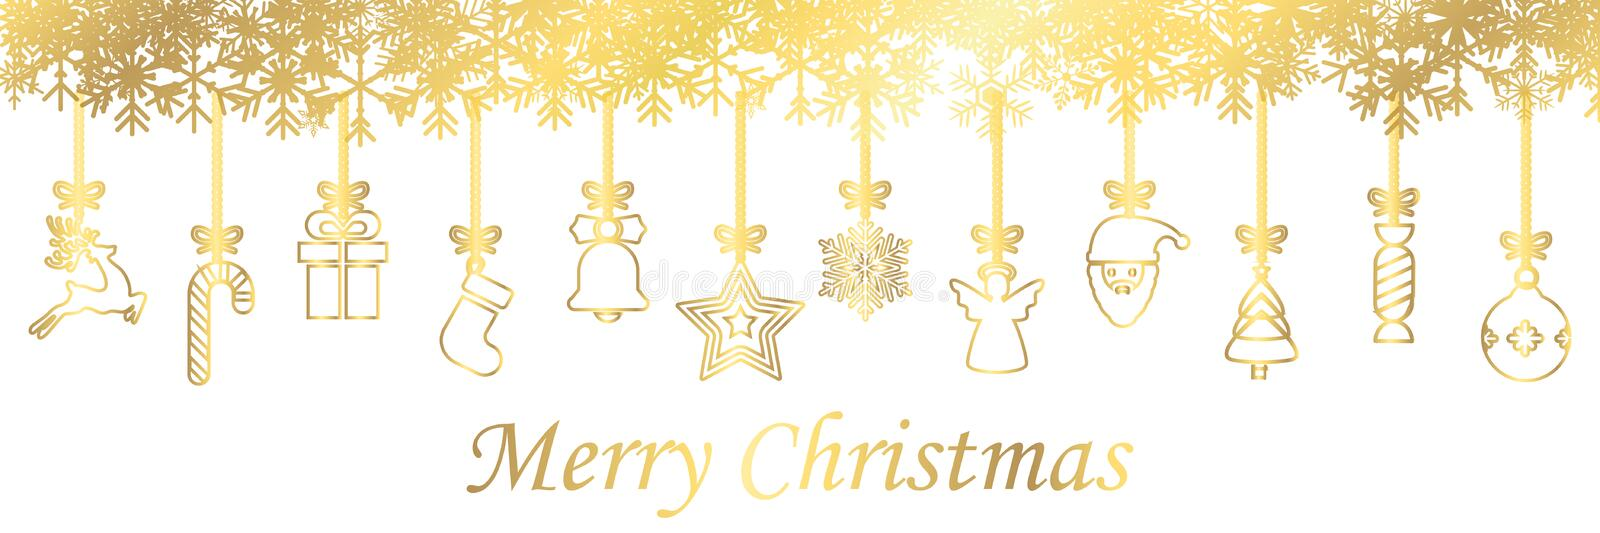 Banners from different golden hanging Christmas symbol icons, Merry Christmas, Happy New Year - vector vector illustration